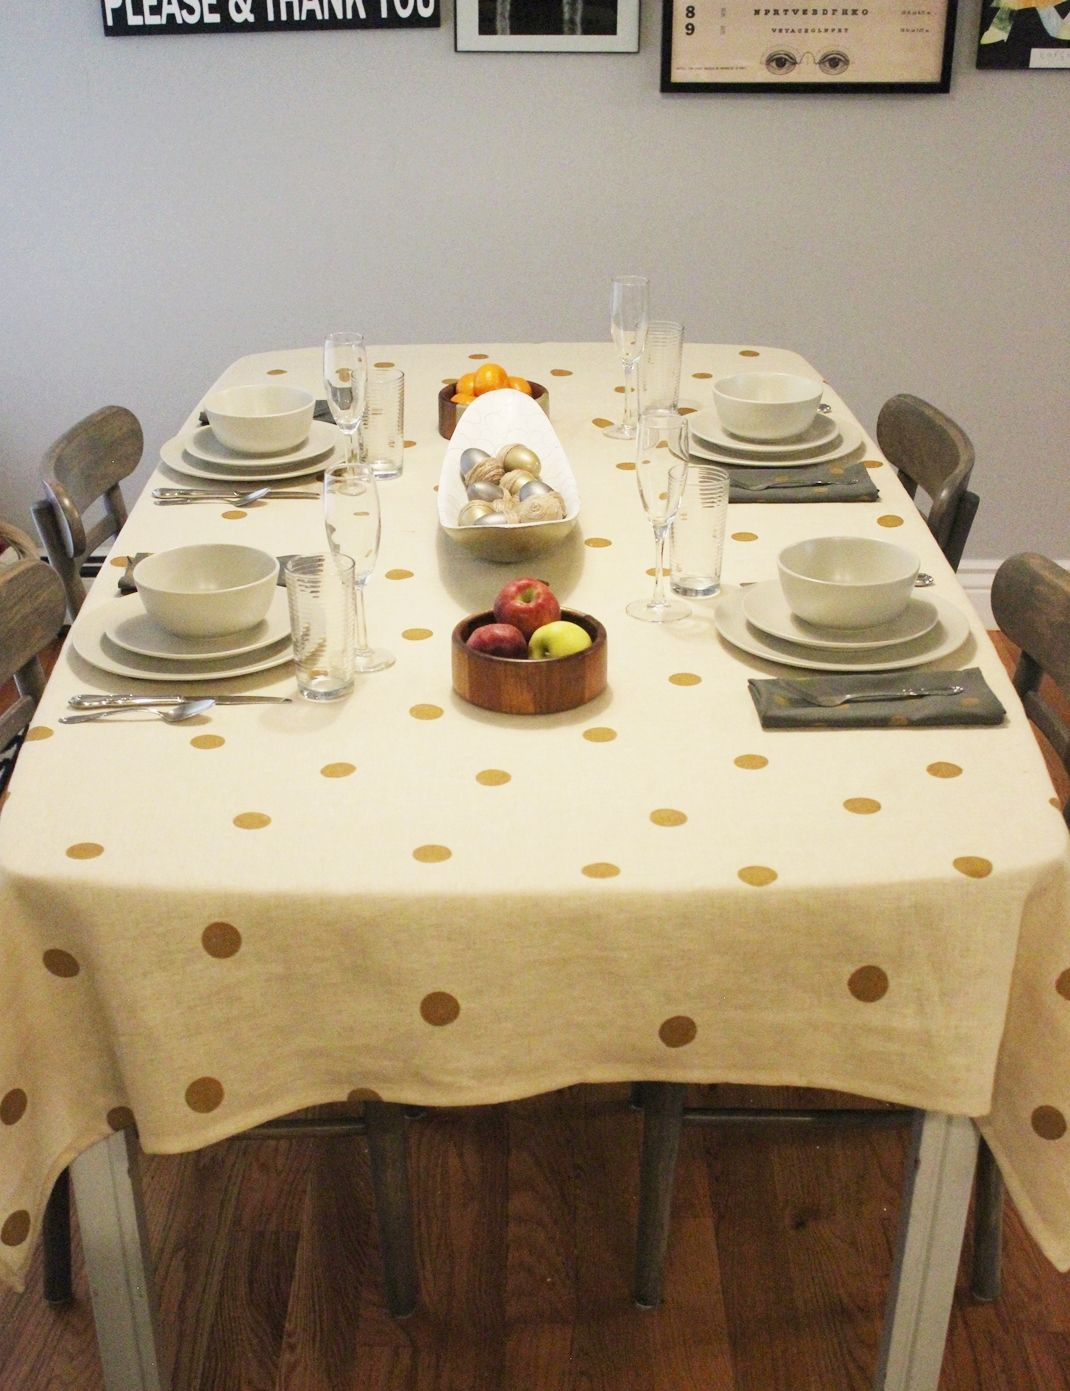 Prepare the table for Thanksgiving